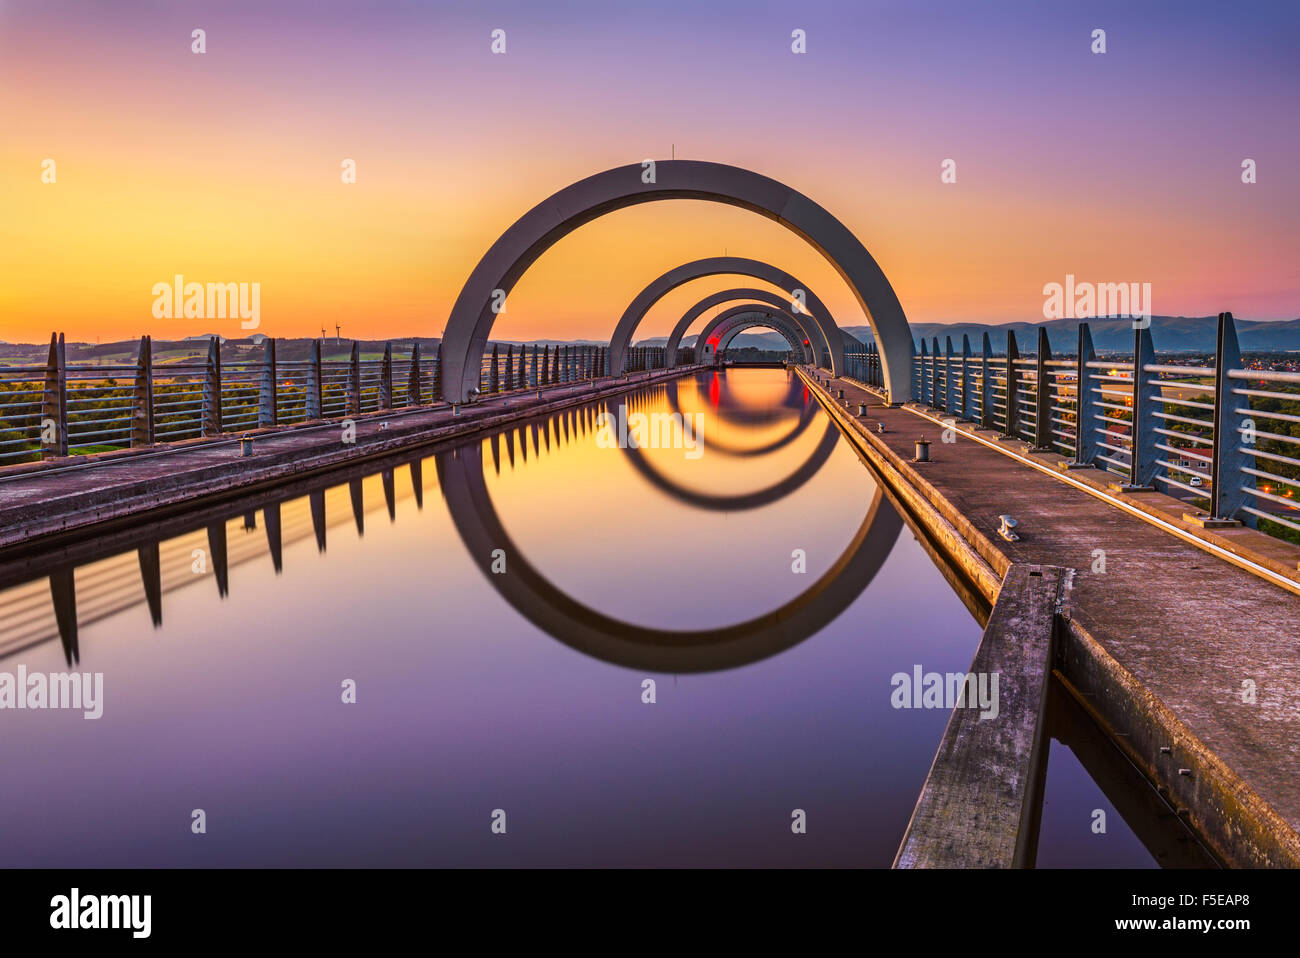 Falkirk Wheel at sunset. Falkirk Wheel is a rotating boat lift in Scotland and connects the Forth and Clyde Canal - Stock Image